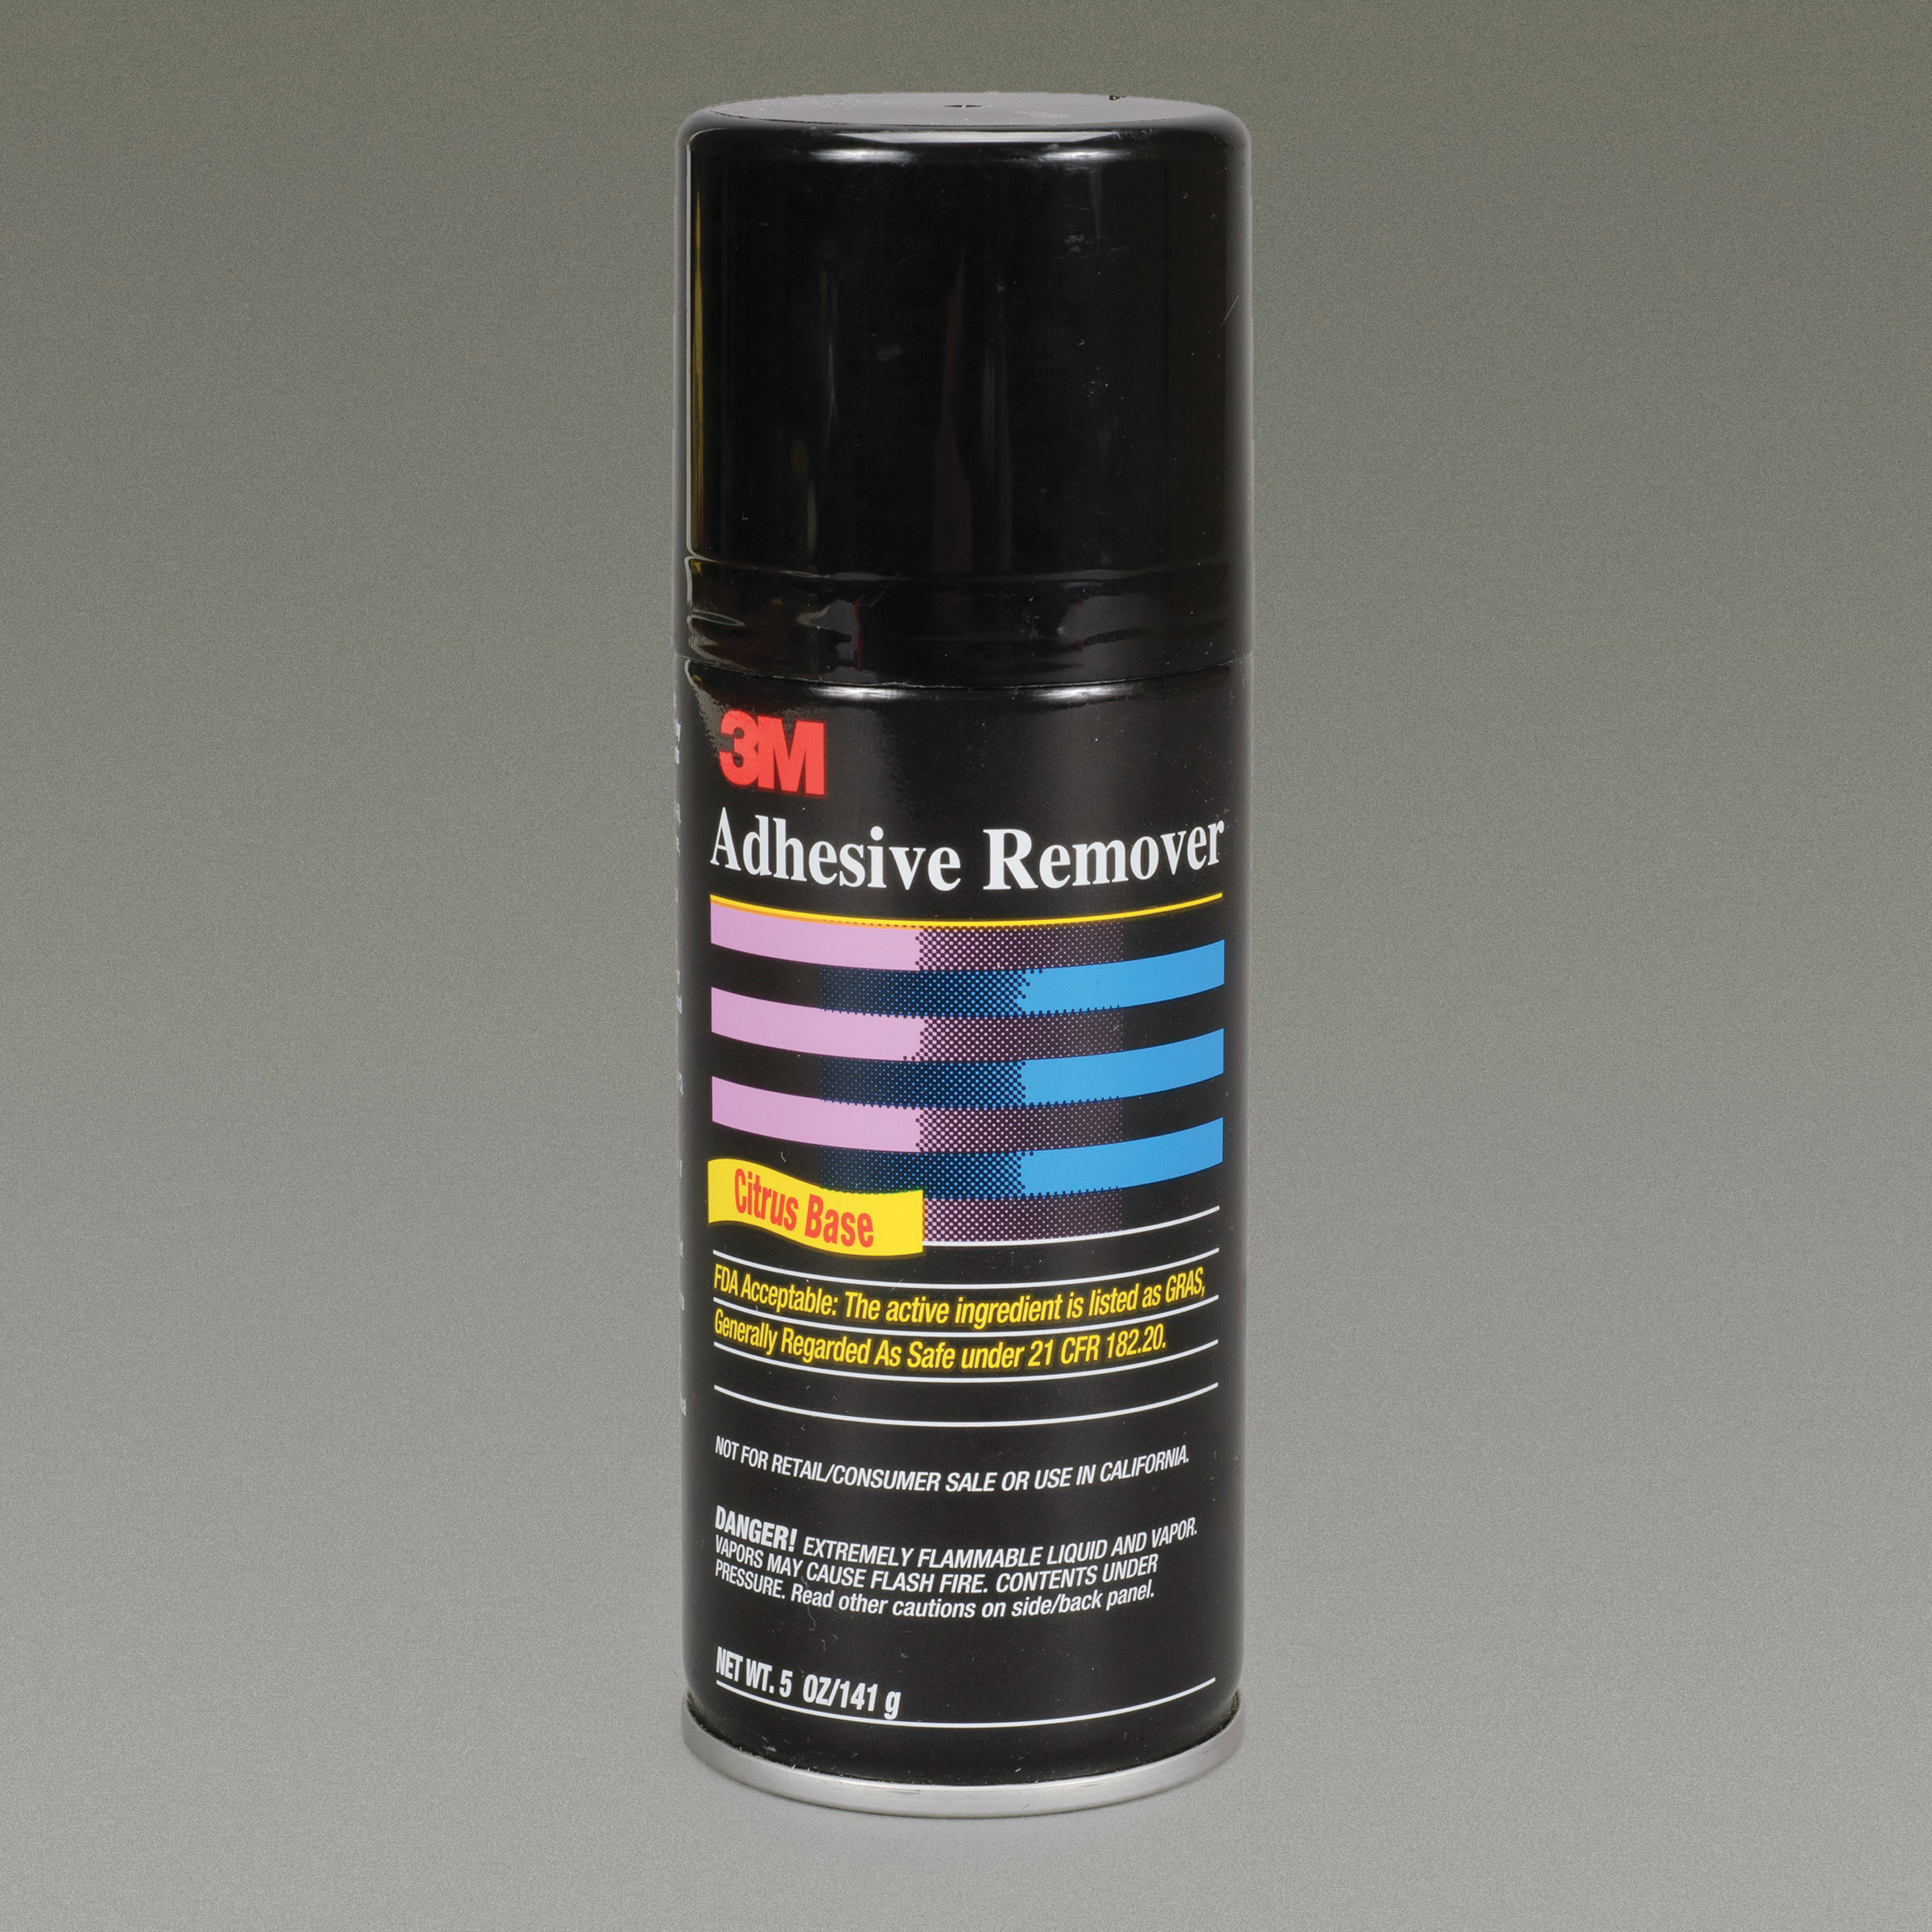 3M™ 021200-39296 ADH REM - AERO Flammable Food Grade Ready-to-Use Adhesive Remover, 6.25 fl-oz Aerosol Can, Pale Yellow